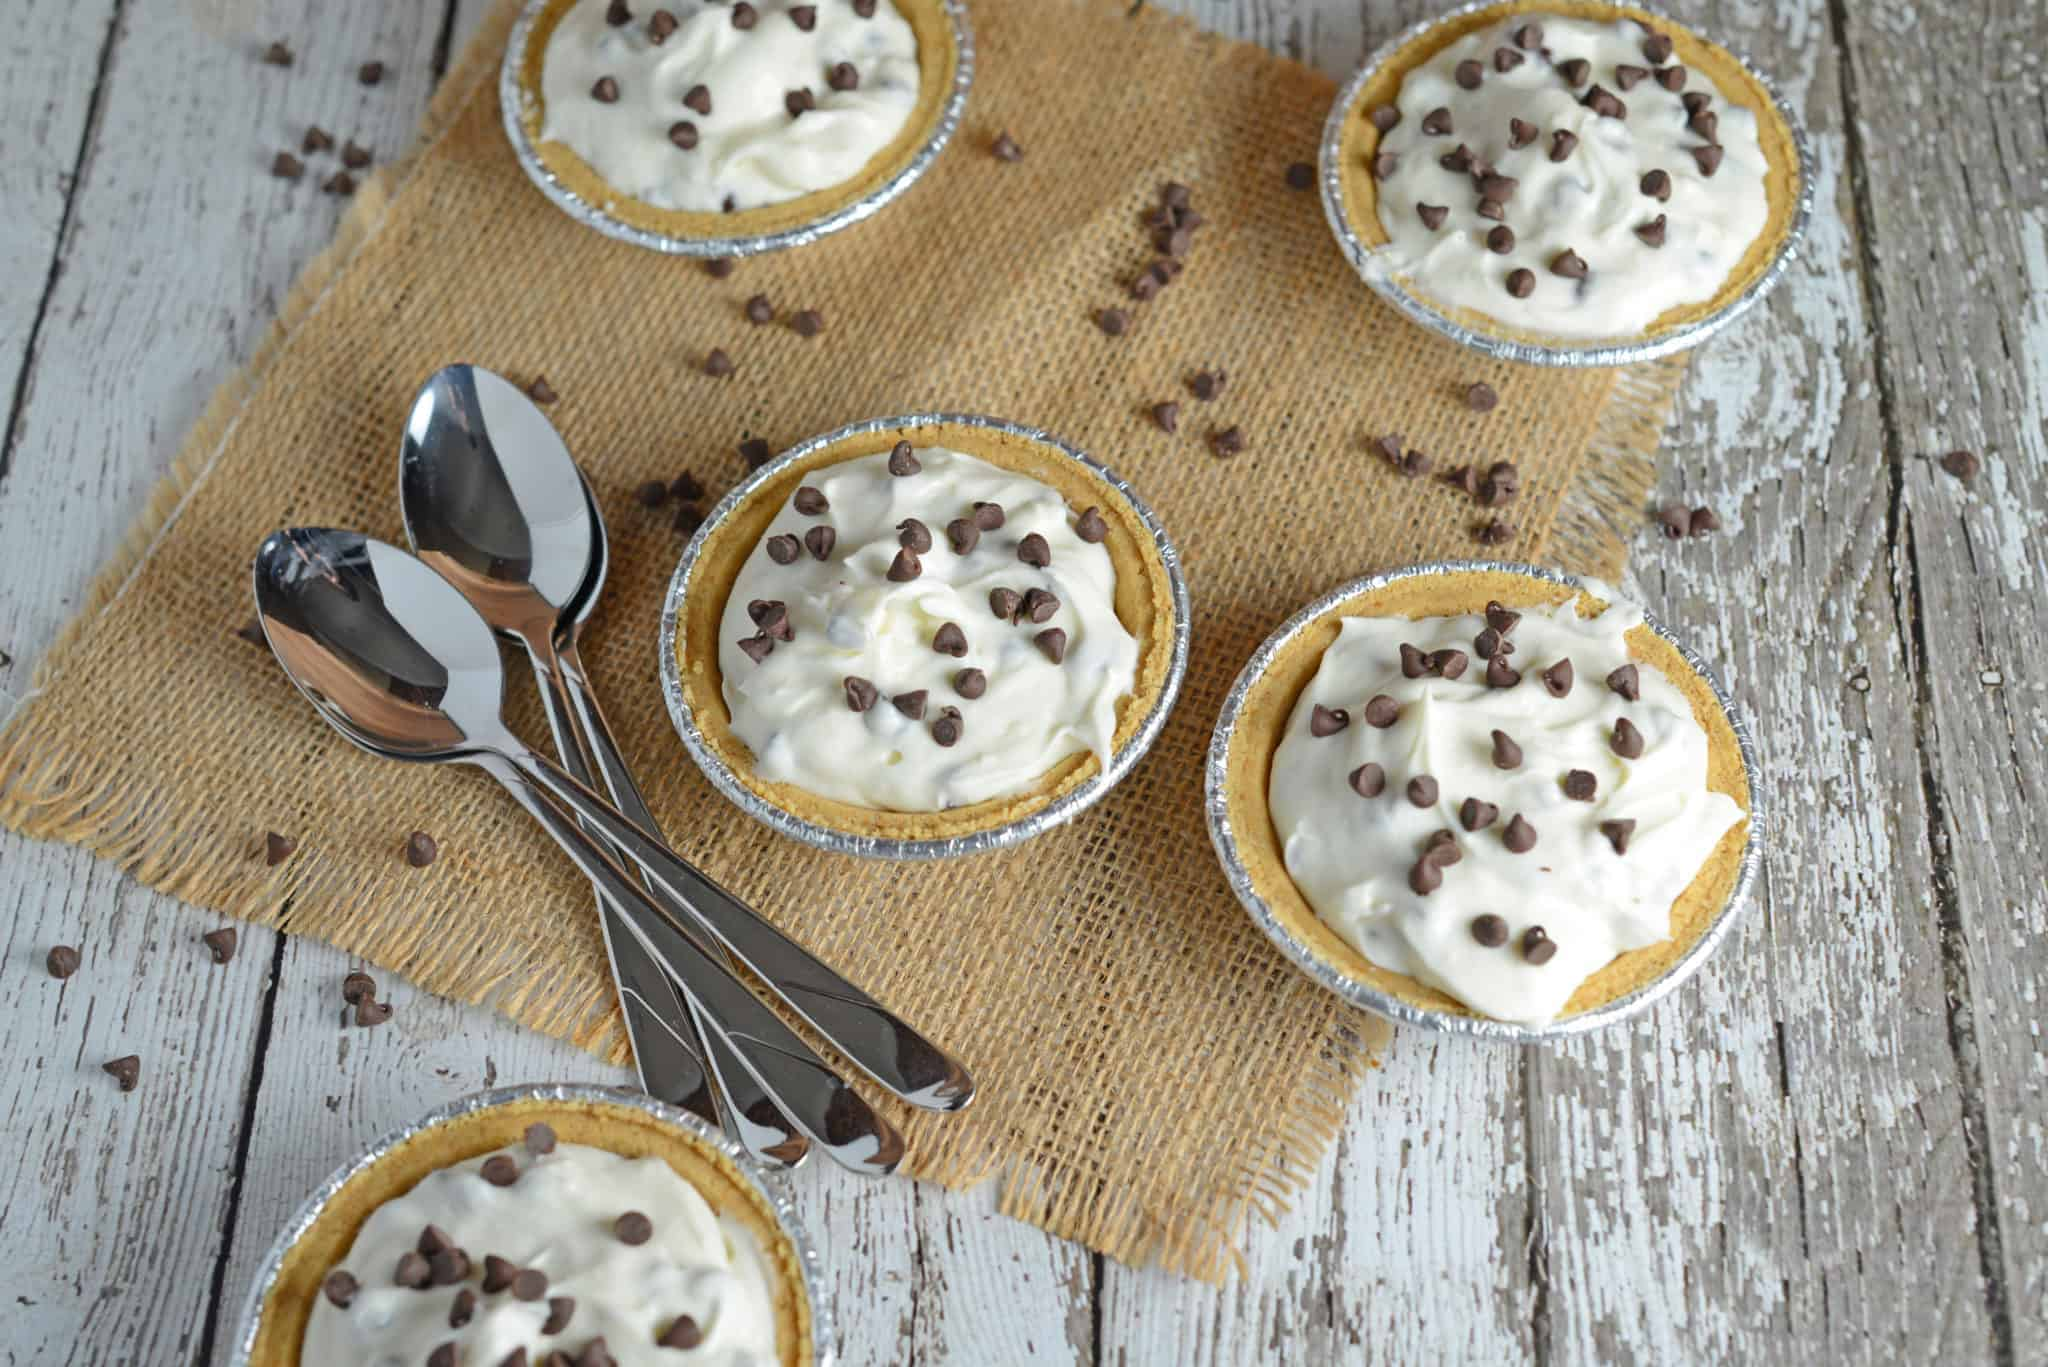 No-Cake Mini Chocolate Chip Cheesecake - an easy and refreshing summer time no cook dessert recipe. Add mini chocolate chips or any crushed candy you enjoy. www.savoryexperiments.com